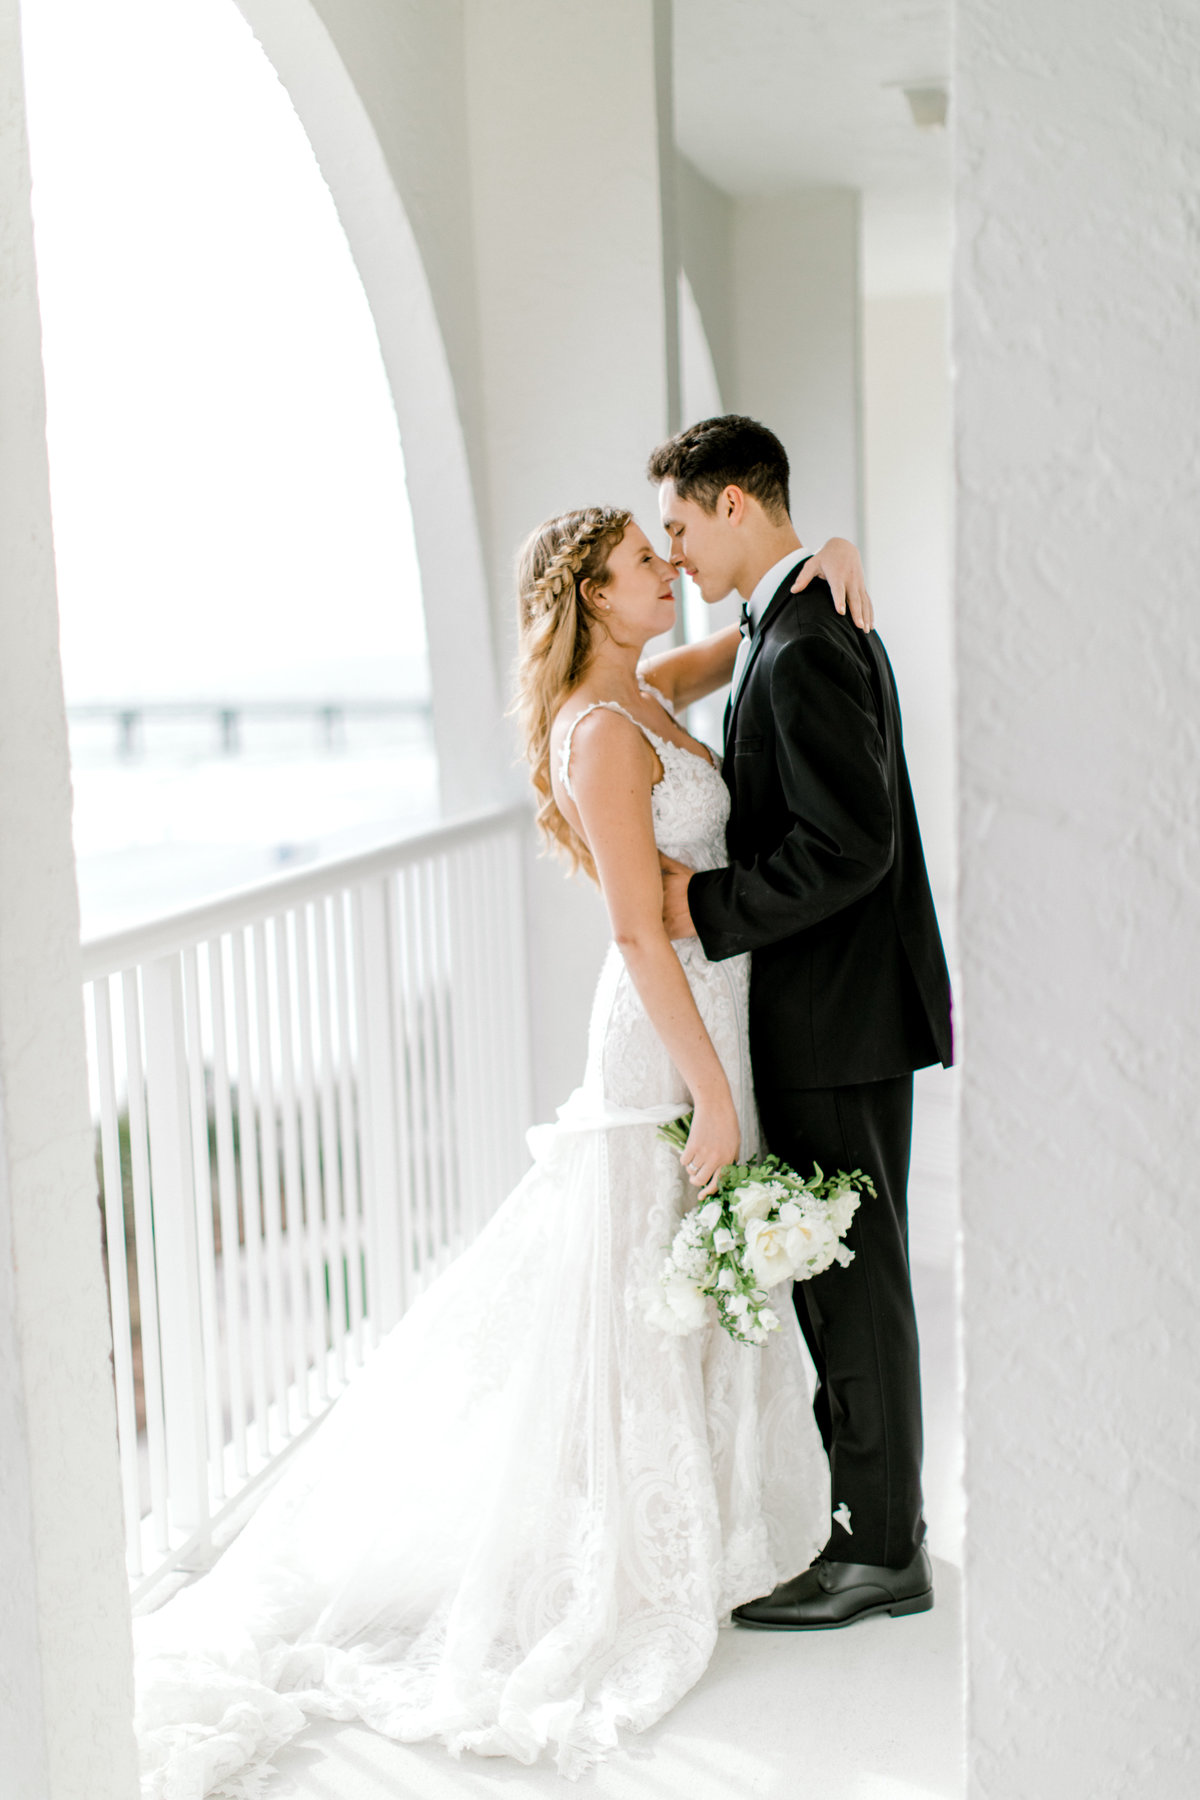 ash-simmons-photography-the-island-ft-walton-florida-wedding-0749